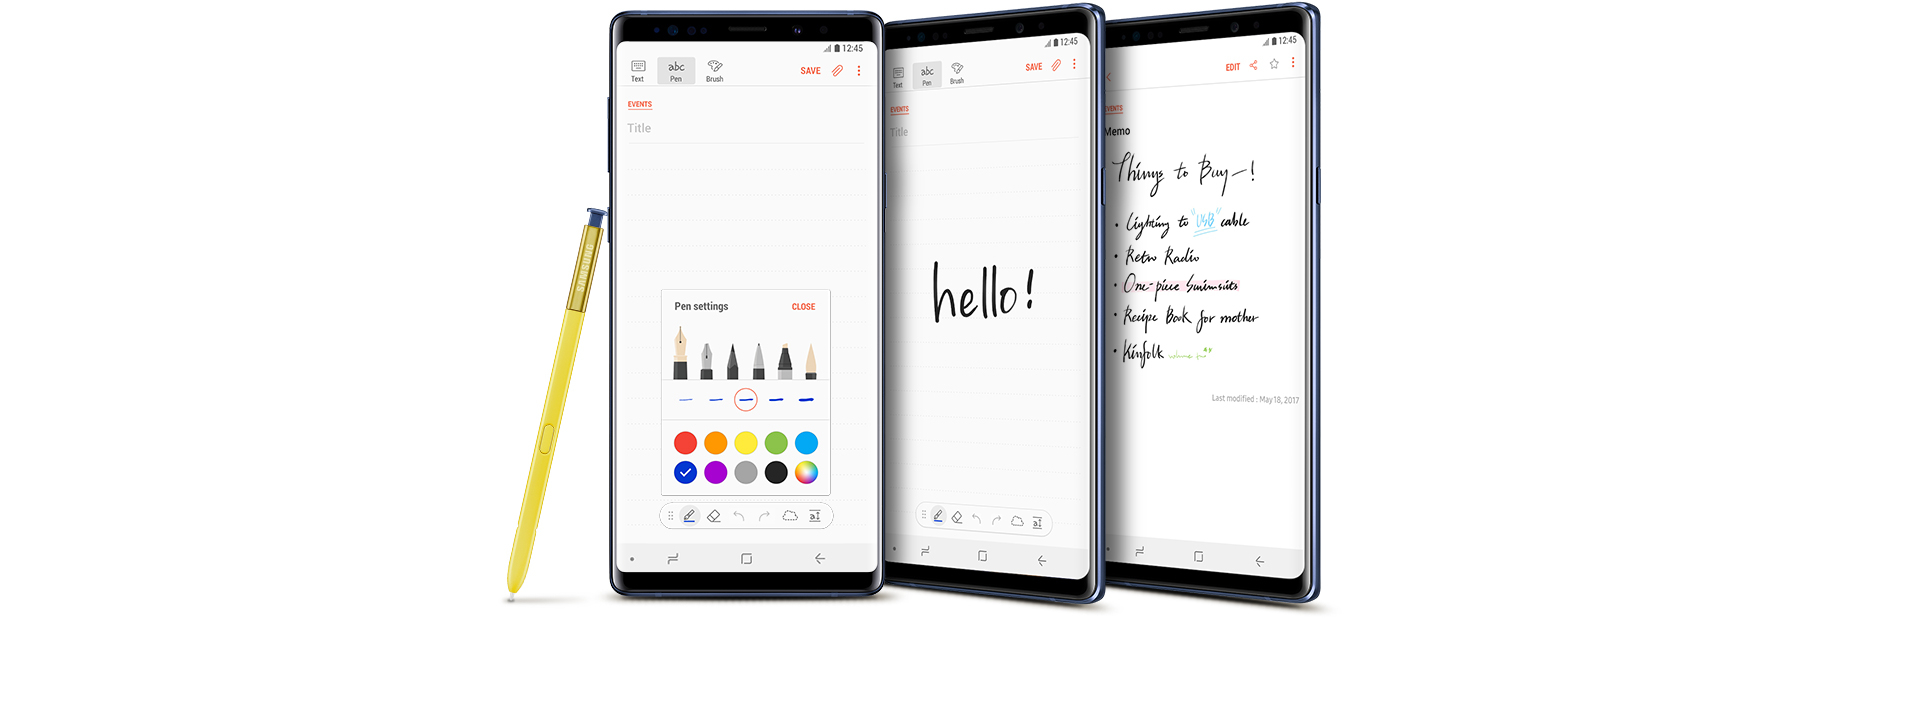 S note background image - Three Different Examples Of How To Use Samsung Notes With The Galaxy Note8 Black S S Pen